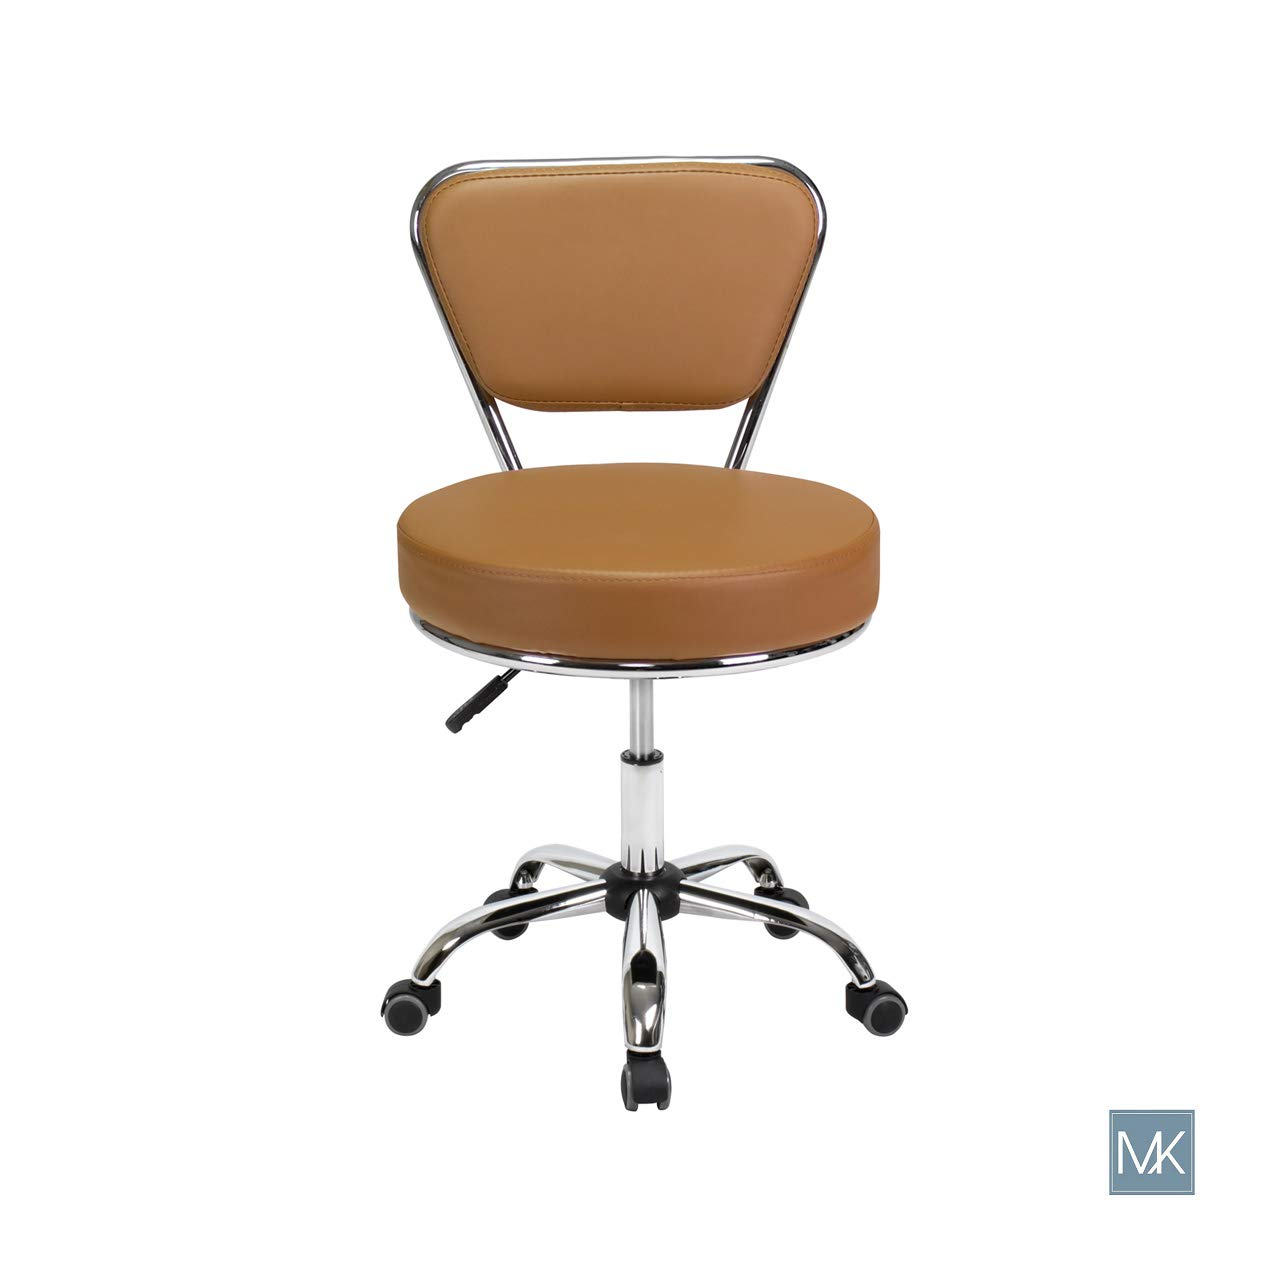 Dayton TECHNICIAN Stool Cappuccino Pneumatic, Adjustable Height 19''-25'' Perfect for Manicures, Nail Salon, Rolling Salon Furniture & Equipment